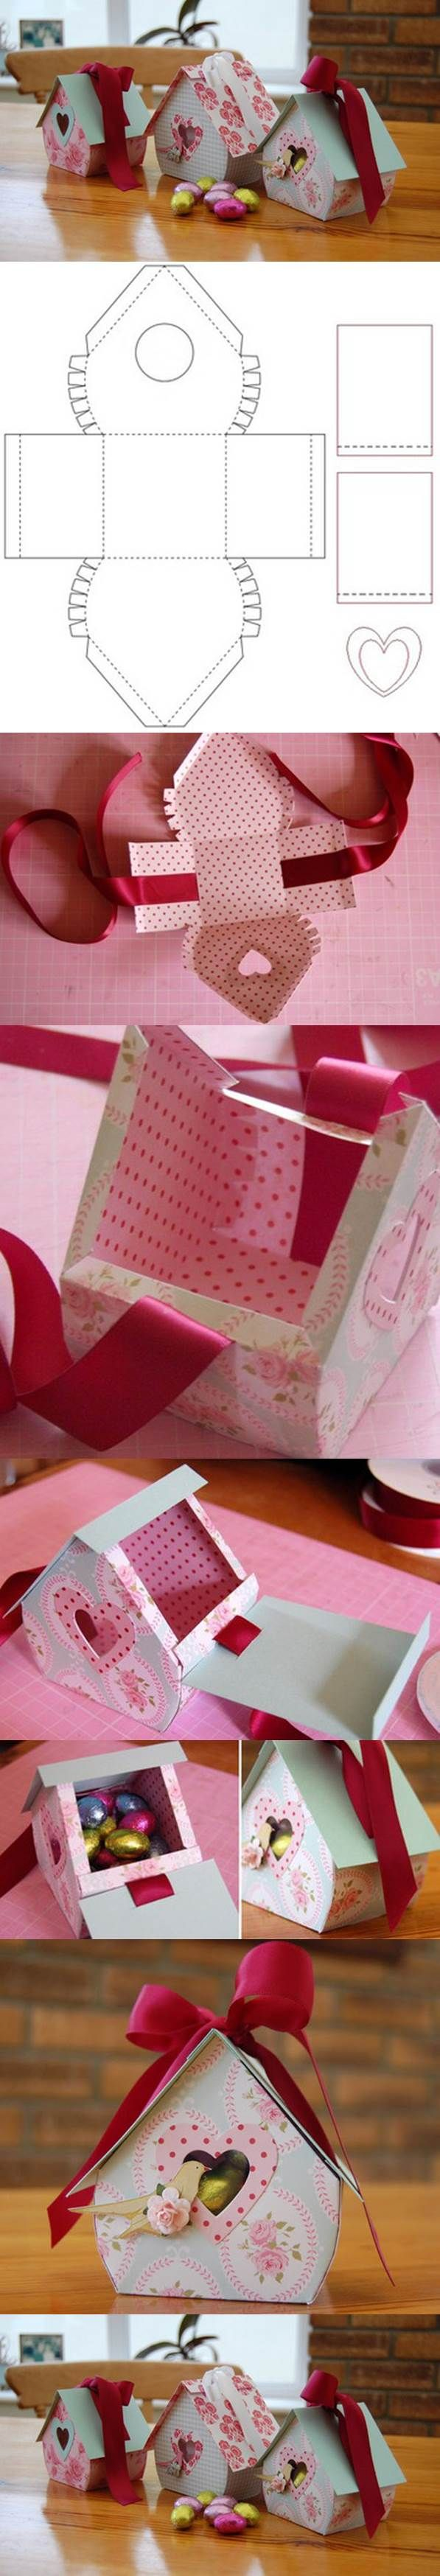 DIY Bird Nest Gift Box | iCreativeIdeas.com Like Us on Facebook ==> https://www.facebook.com/icreativeideas